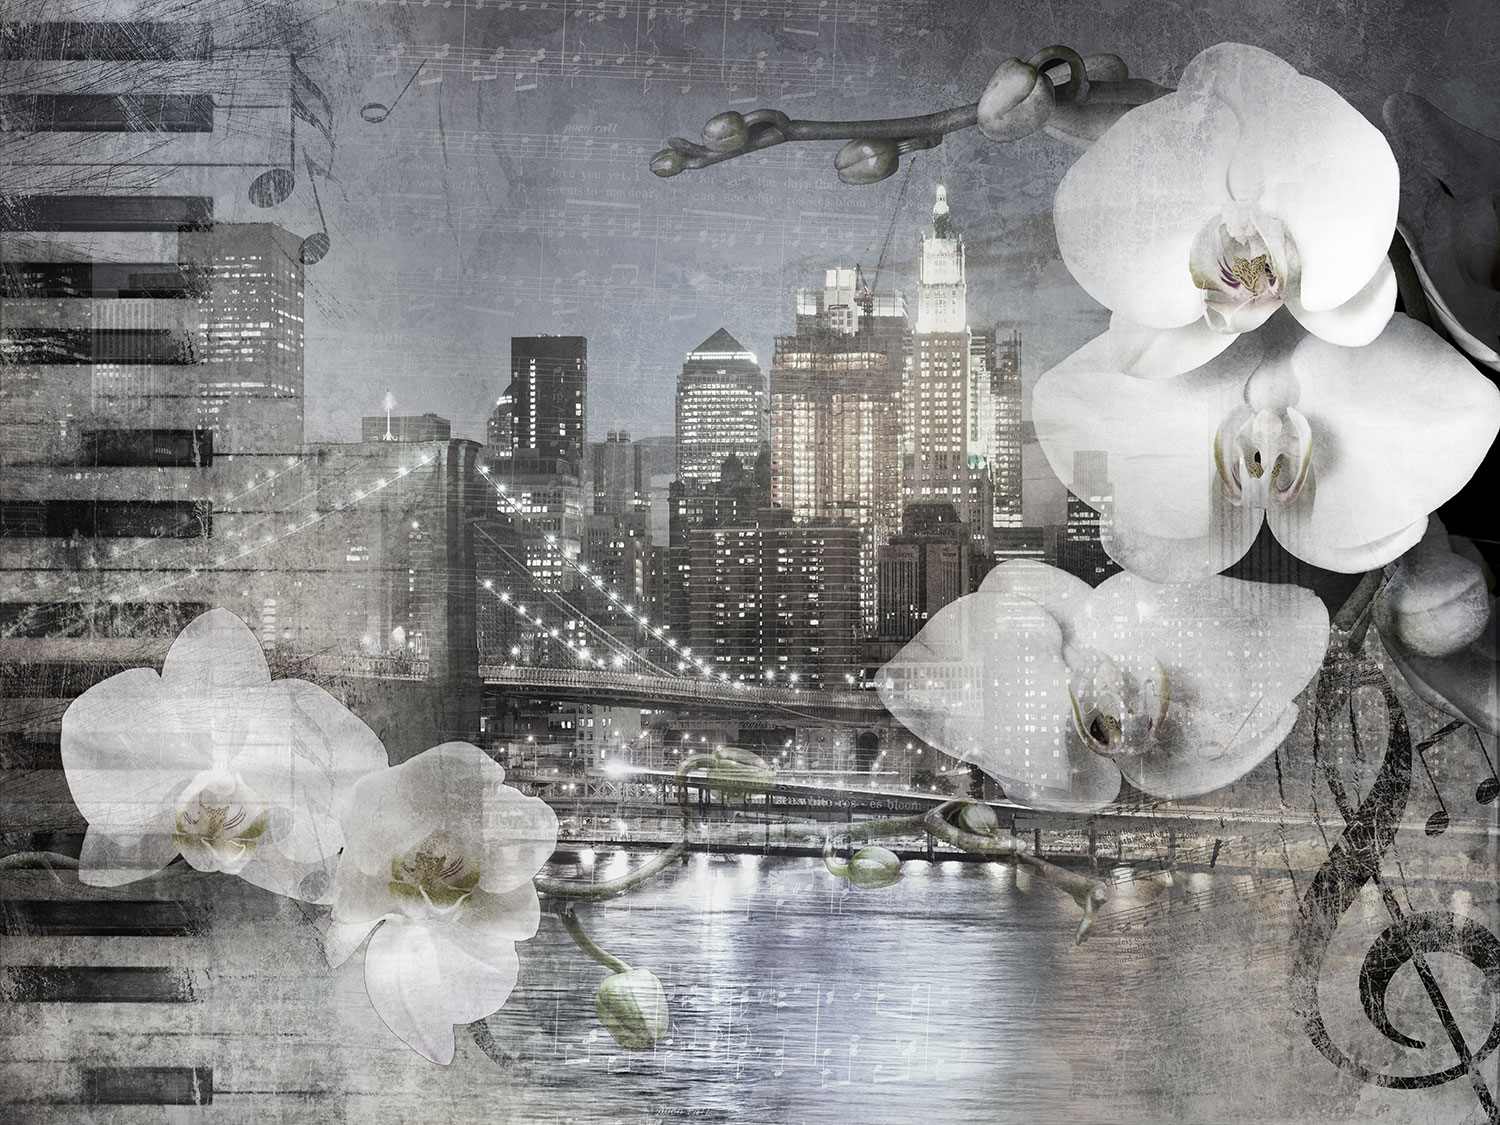 Fotomurales: Collage Orquídeas en Nueva York